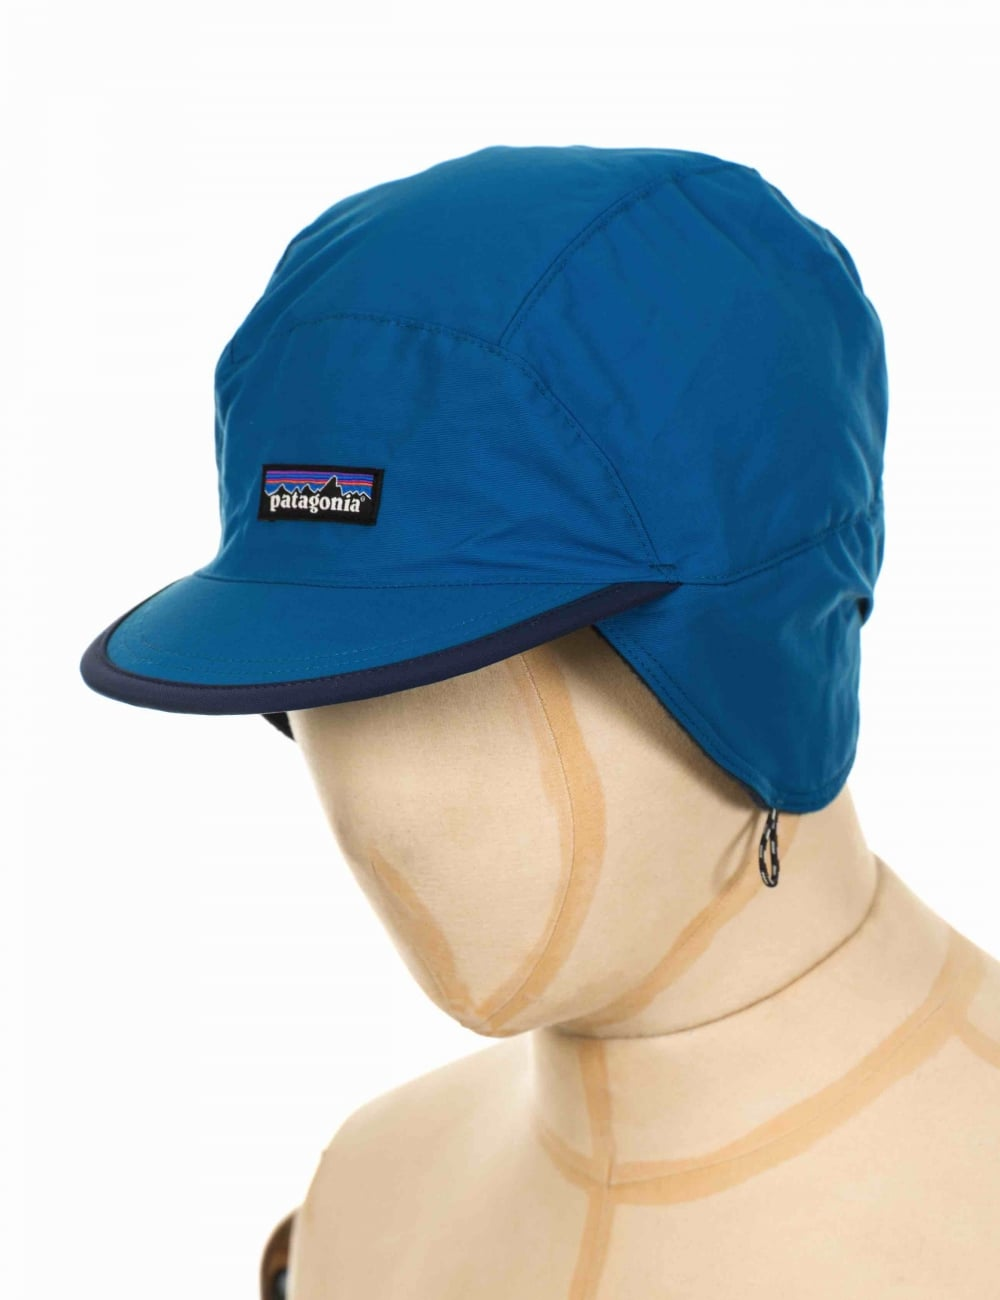 7fc4f96beaef8 Patagonia Shelled Synchilla Duckbill Cap - Big Sur Blue - Hat Shop ...